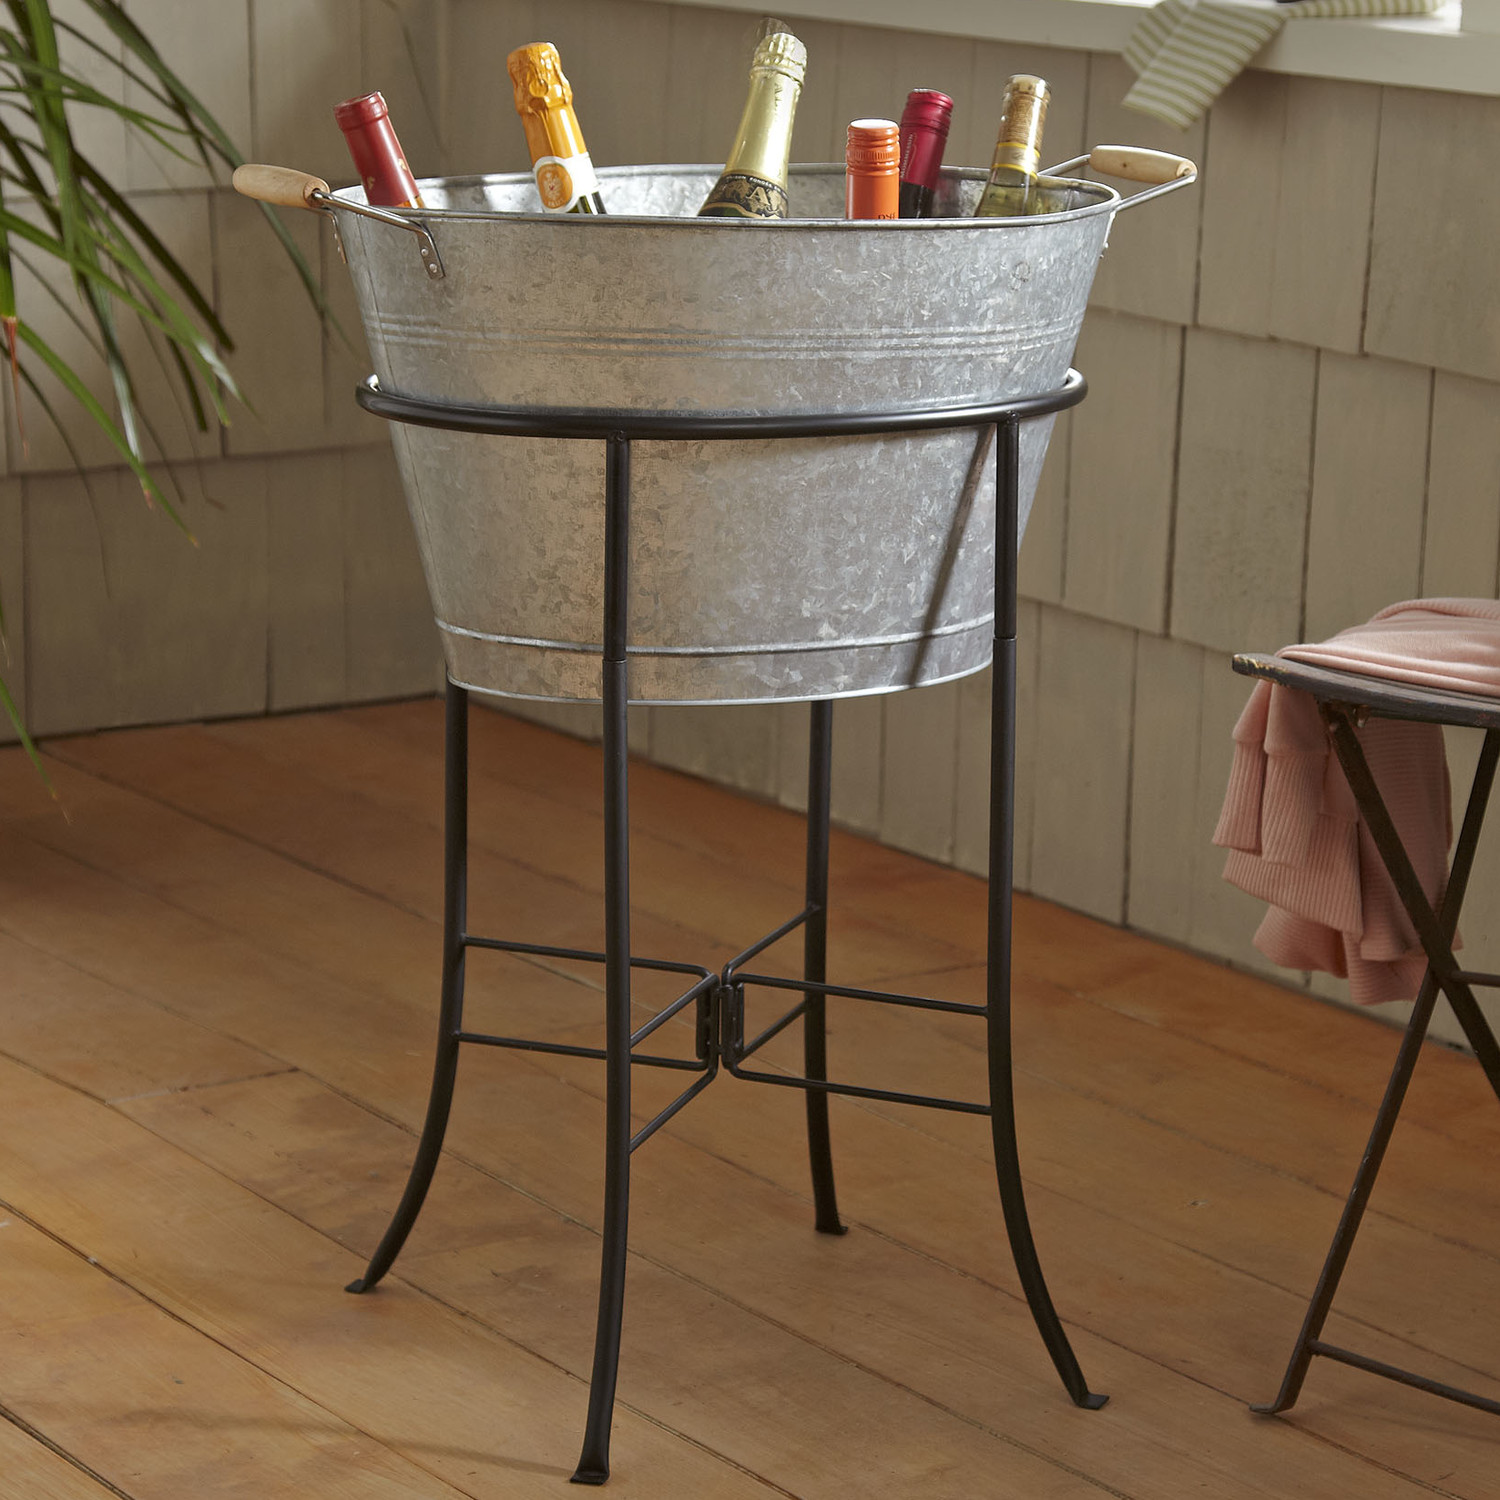 Beverage Stand Related Searches: From bottles of wine to bottles of beer, the 5-Gallon Solid Copper Etched Beverage Tub with Stand by Old Dutch International keeps your beverages cold and the party going. This versatile tub also functions as bin for storing kindling wood.